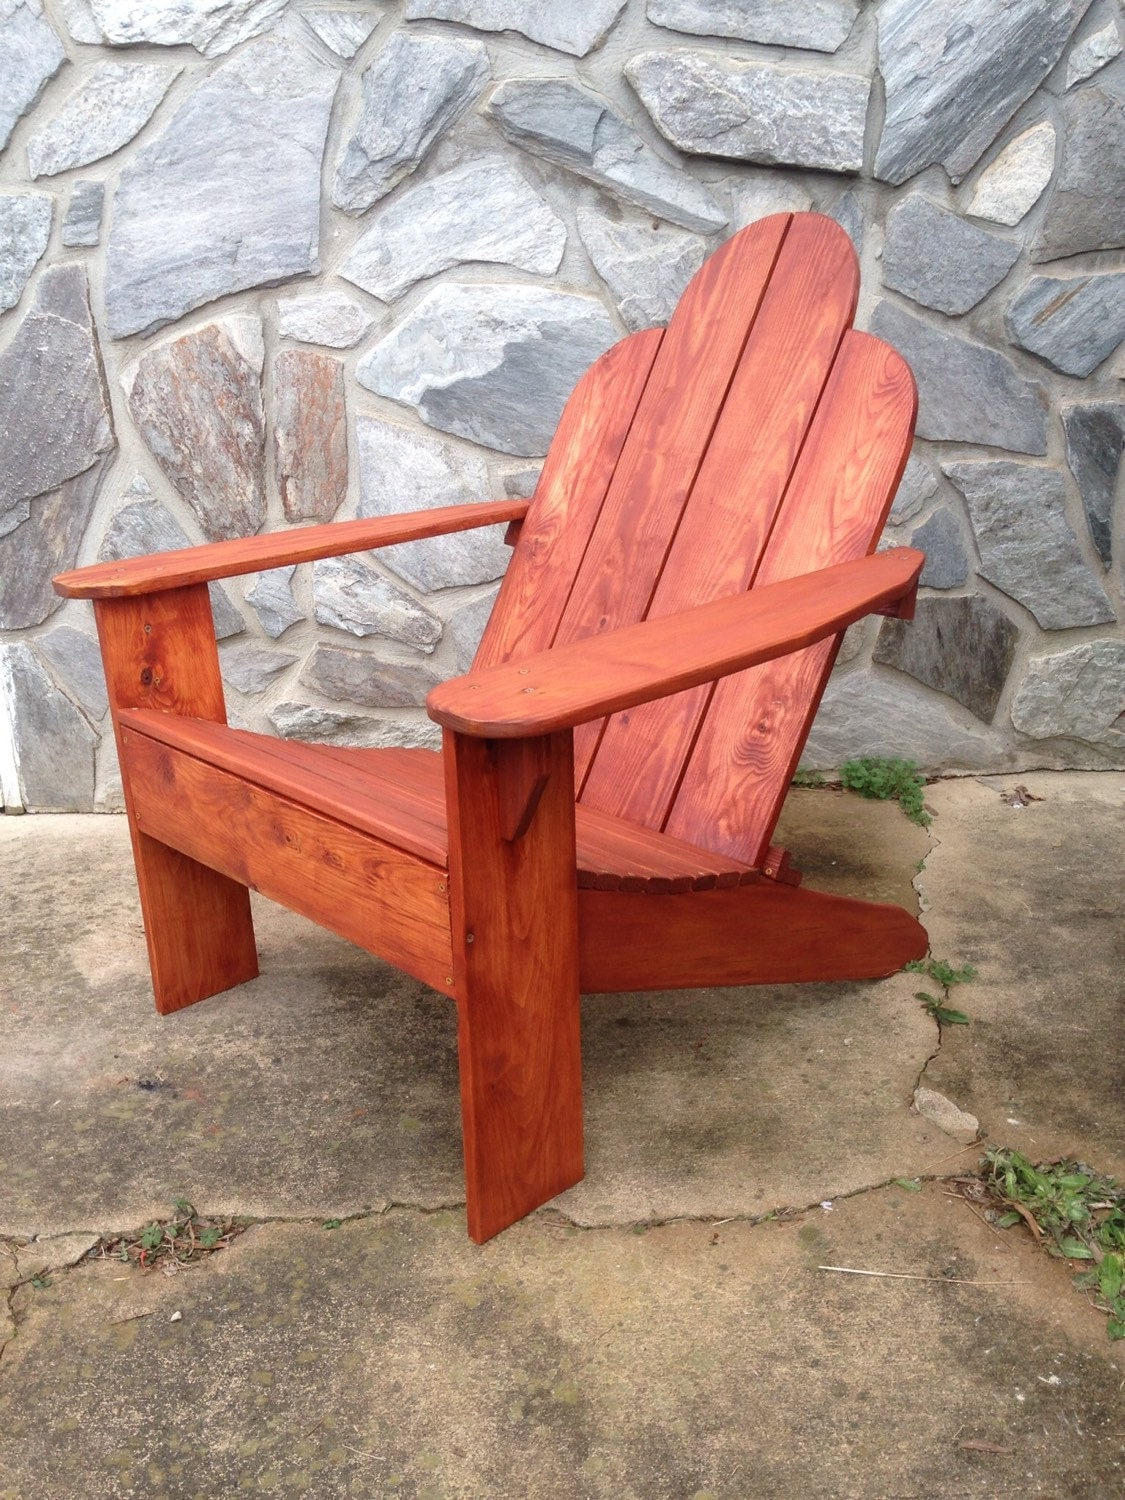 Adirondack chairs by lostfoundrecreations on etsy - Patterns for adirondack chairs ...